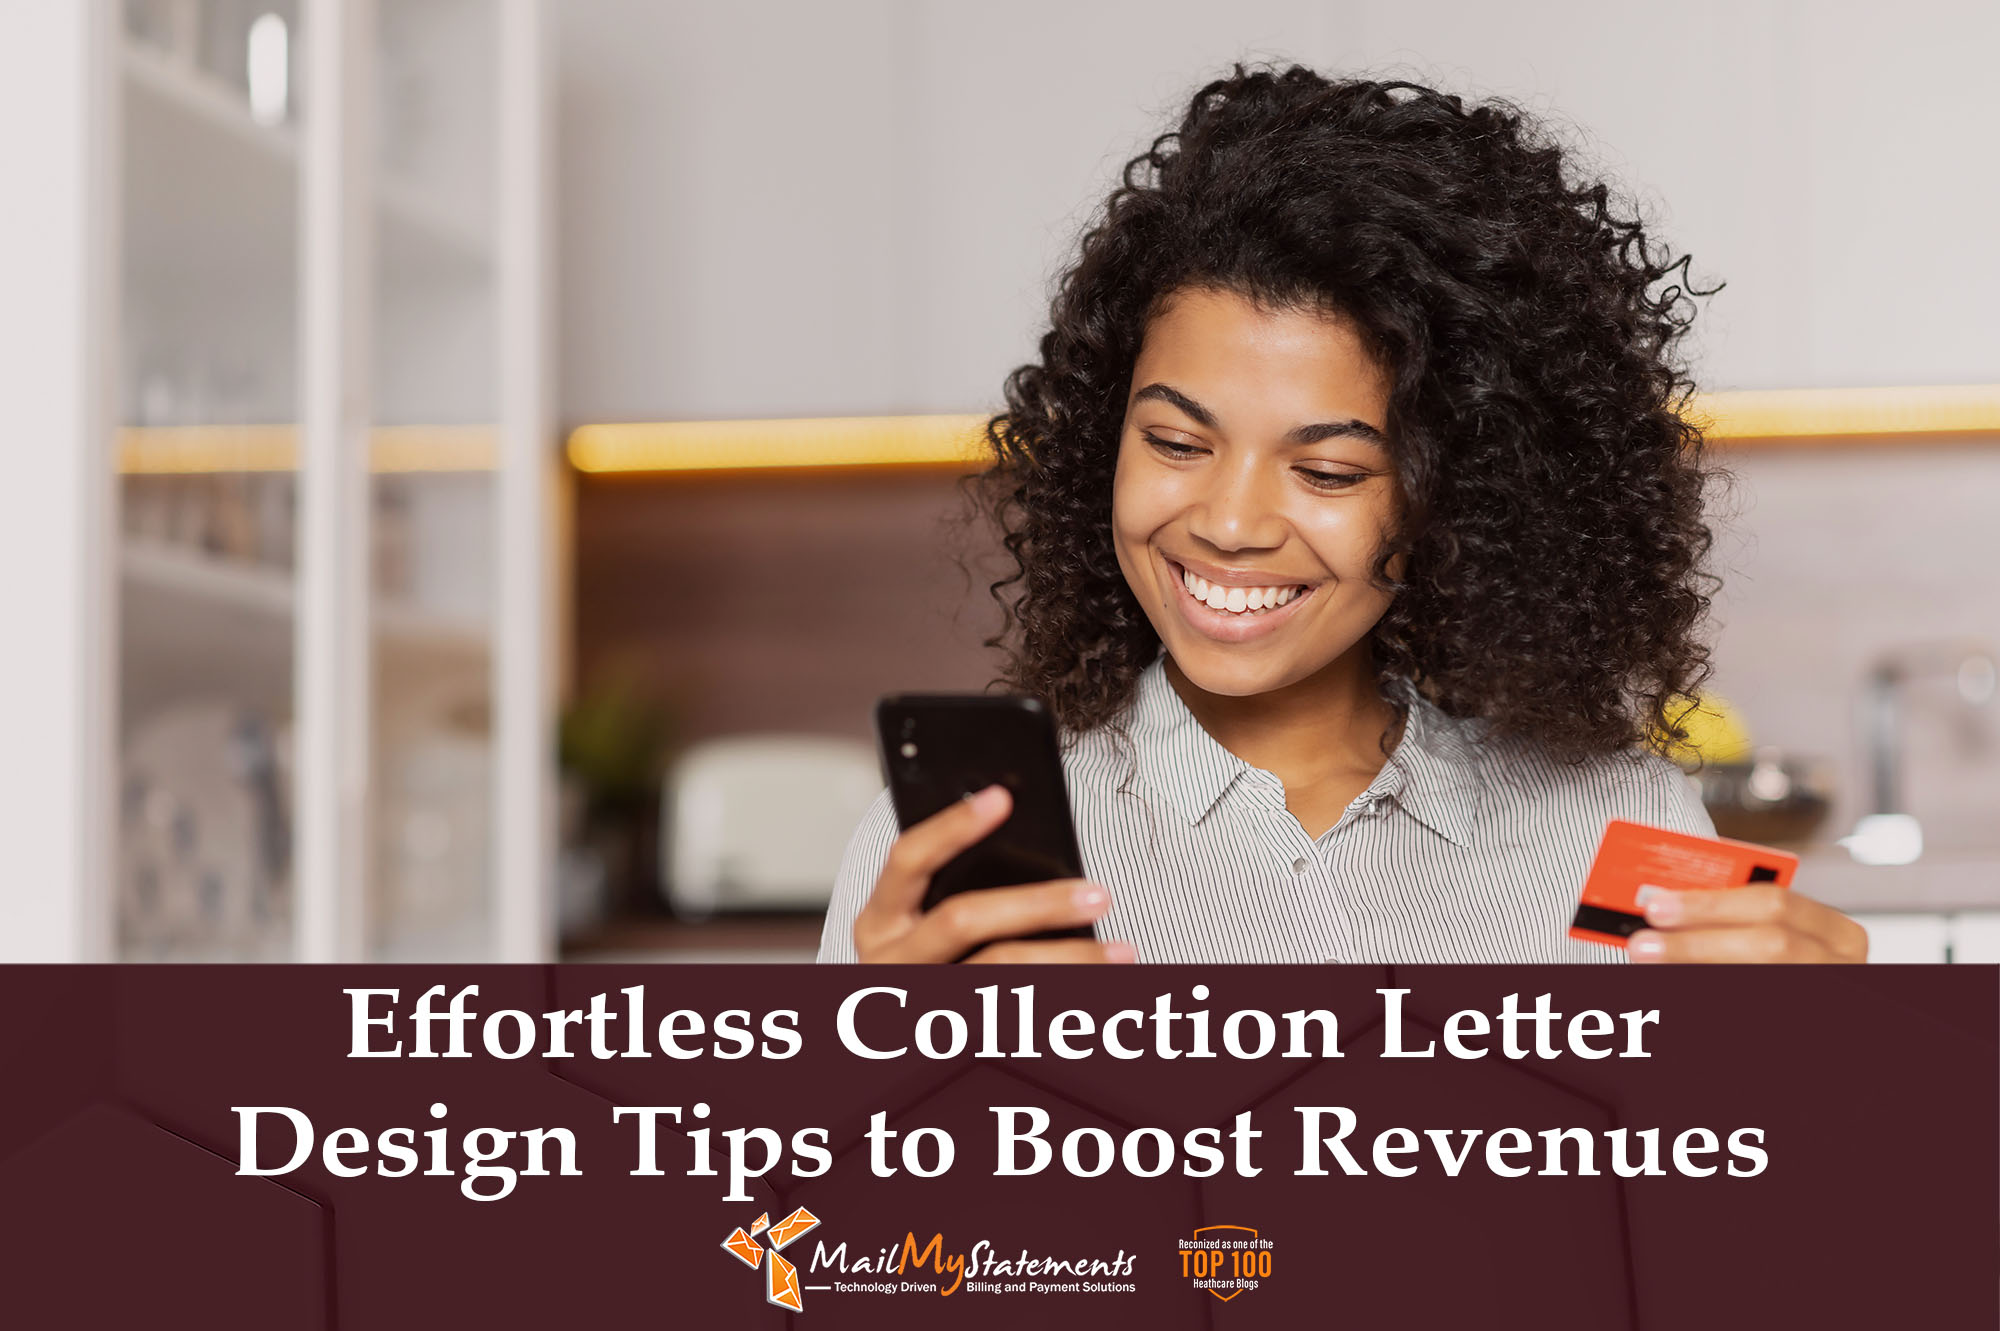 Effortless Collection Letter Design Tips to Boost Revenues